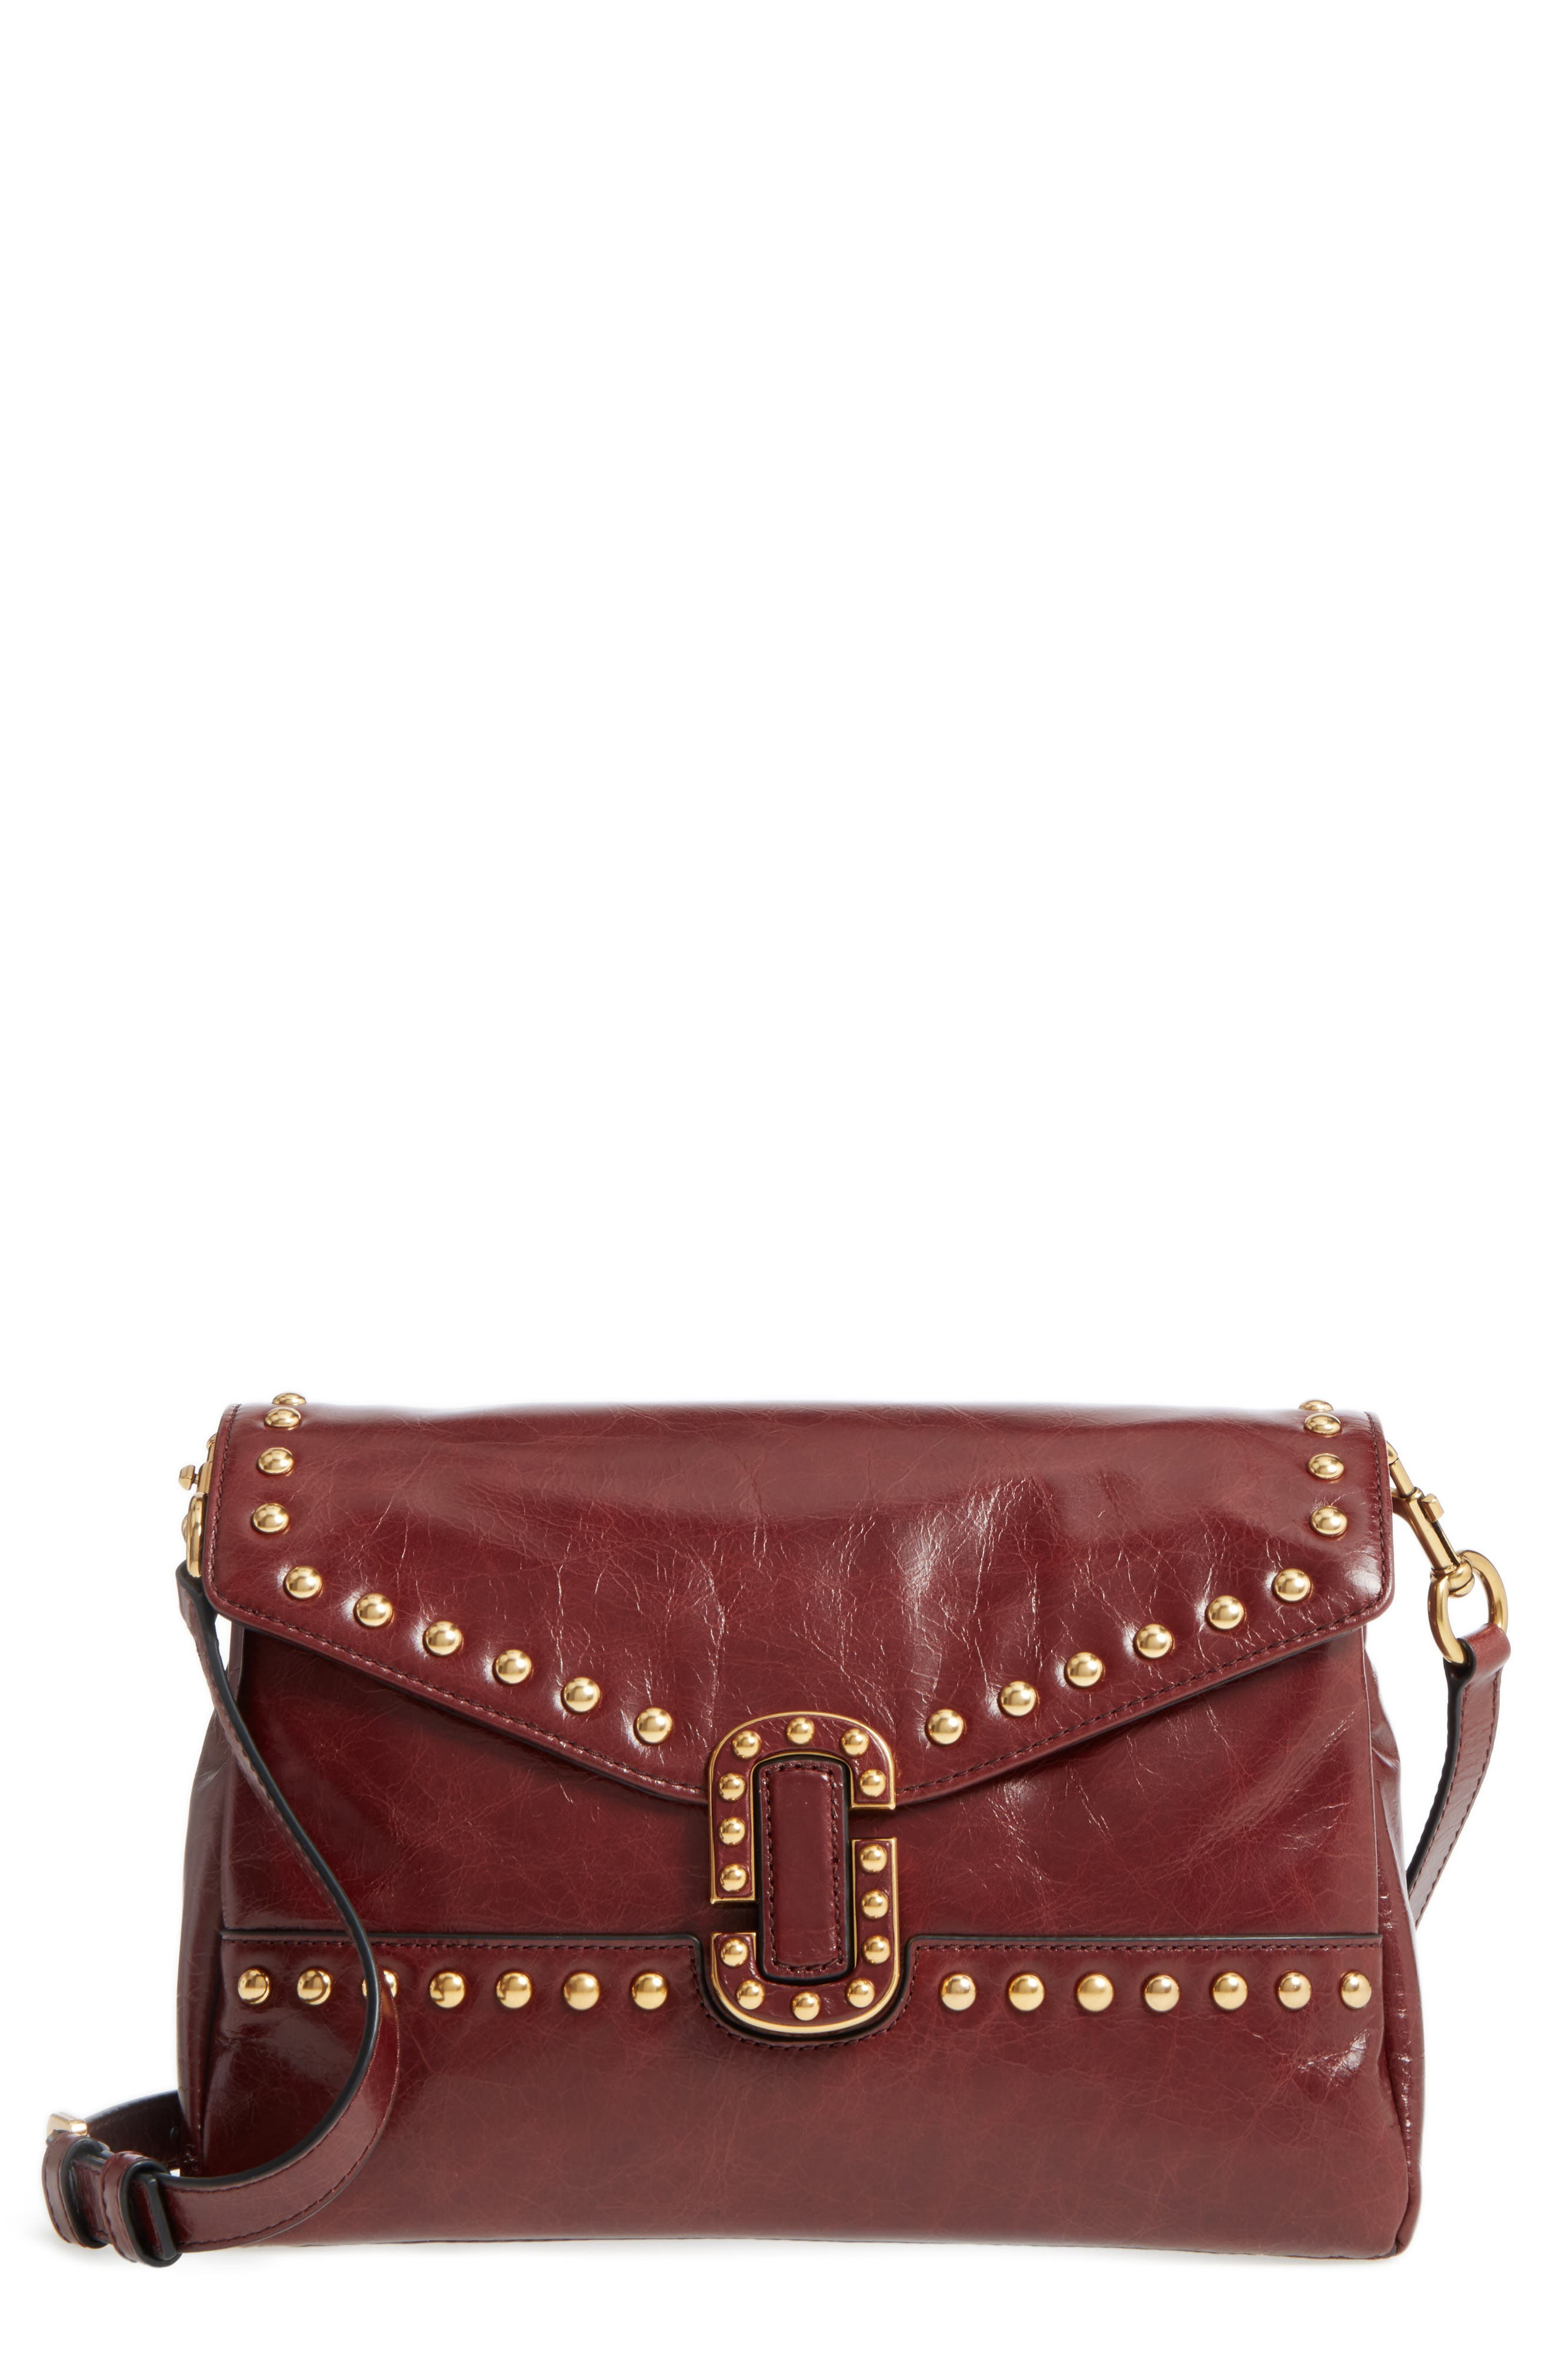 Alternate Image 1 Selected - MARC JACOBS Small Studded Leather Envelope Bag